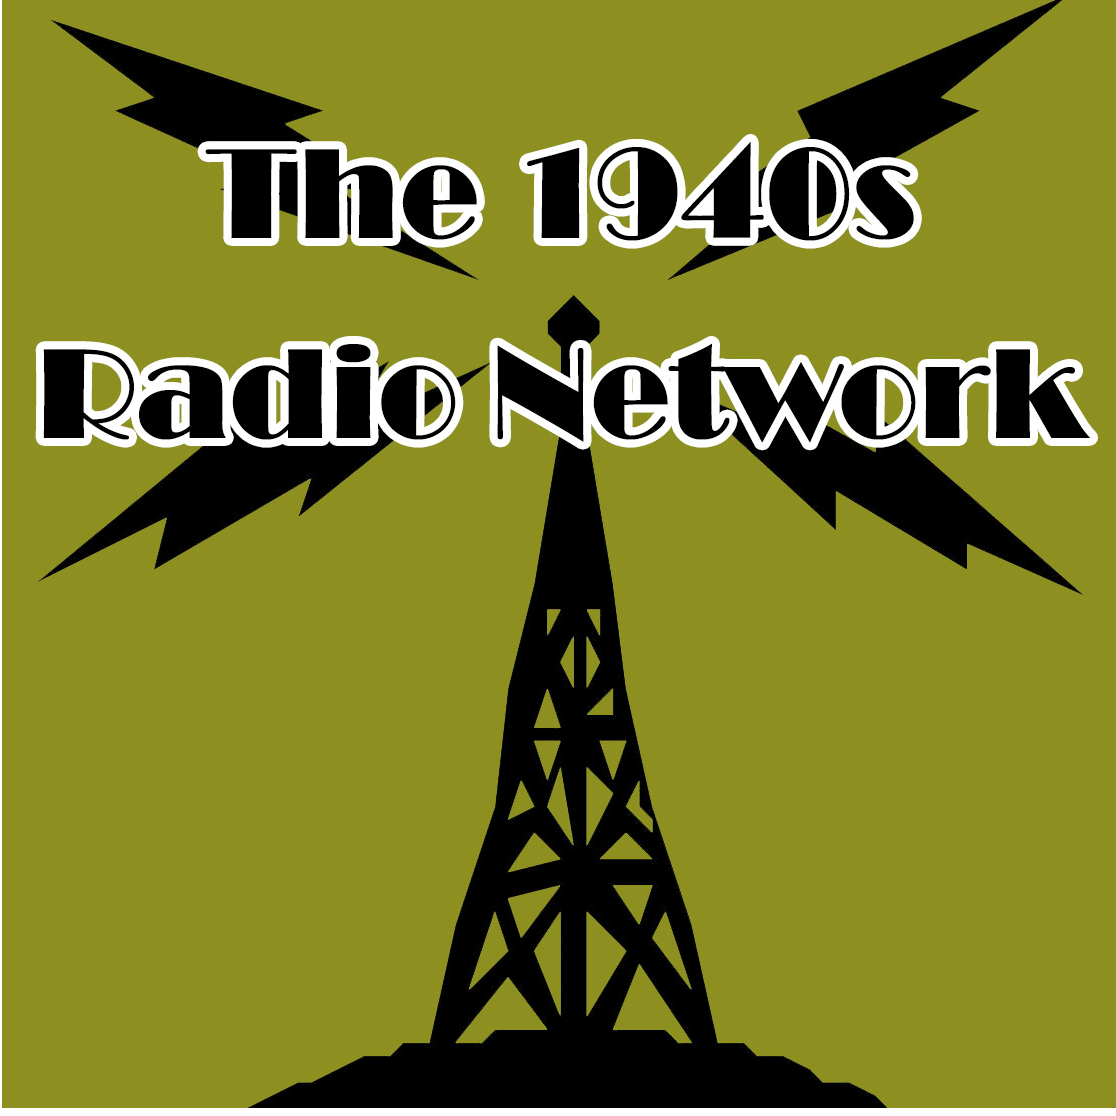 The 1940s Radio Network